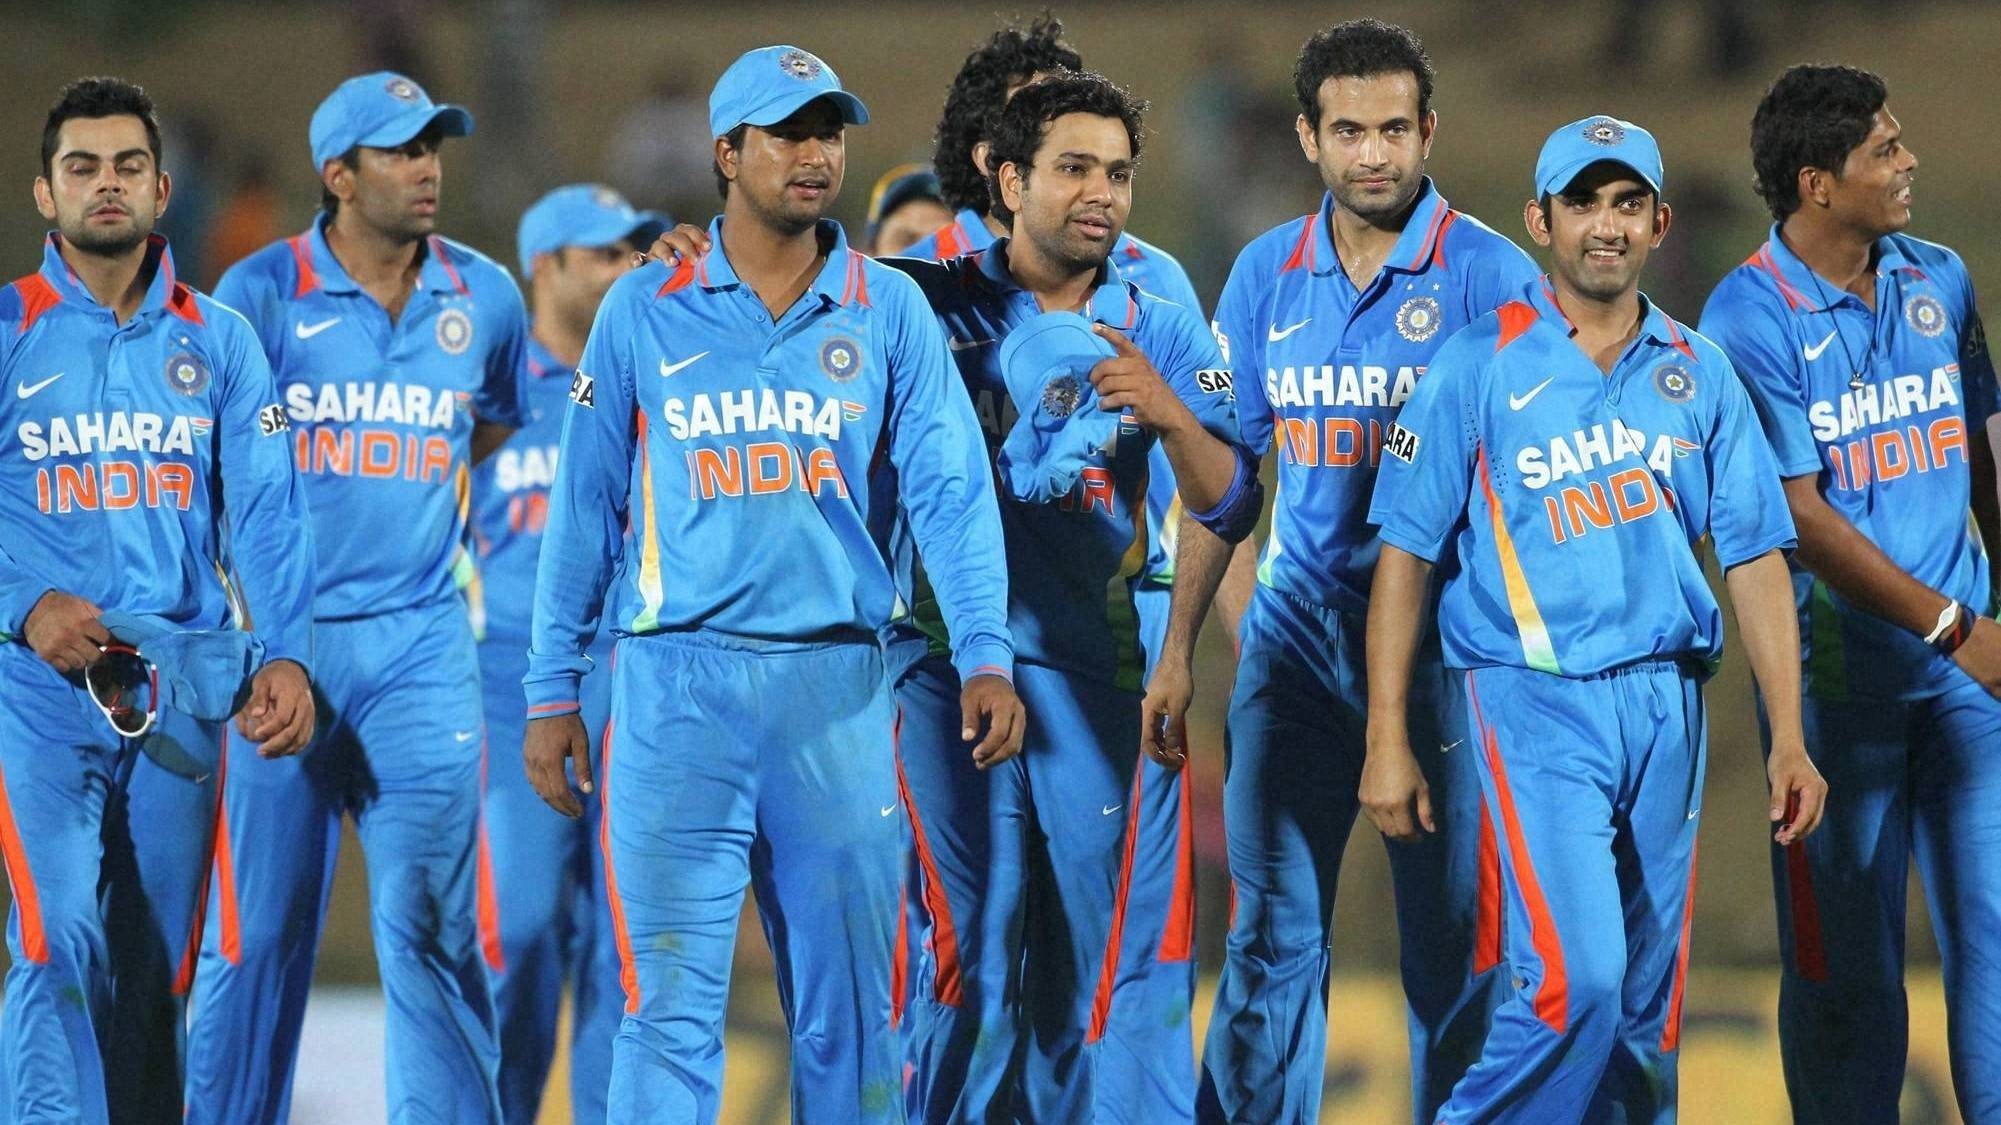 Indian Cricket Hd Wallpapers: Cricket Wallpapers High Quality